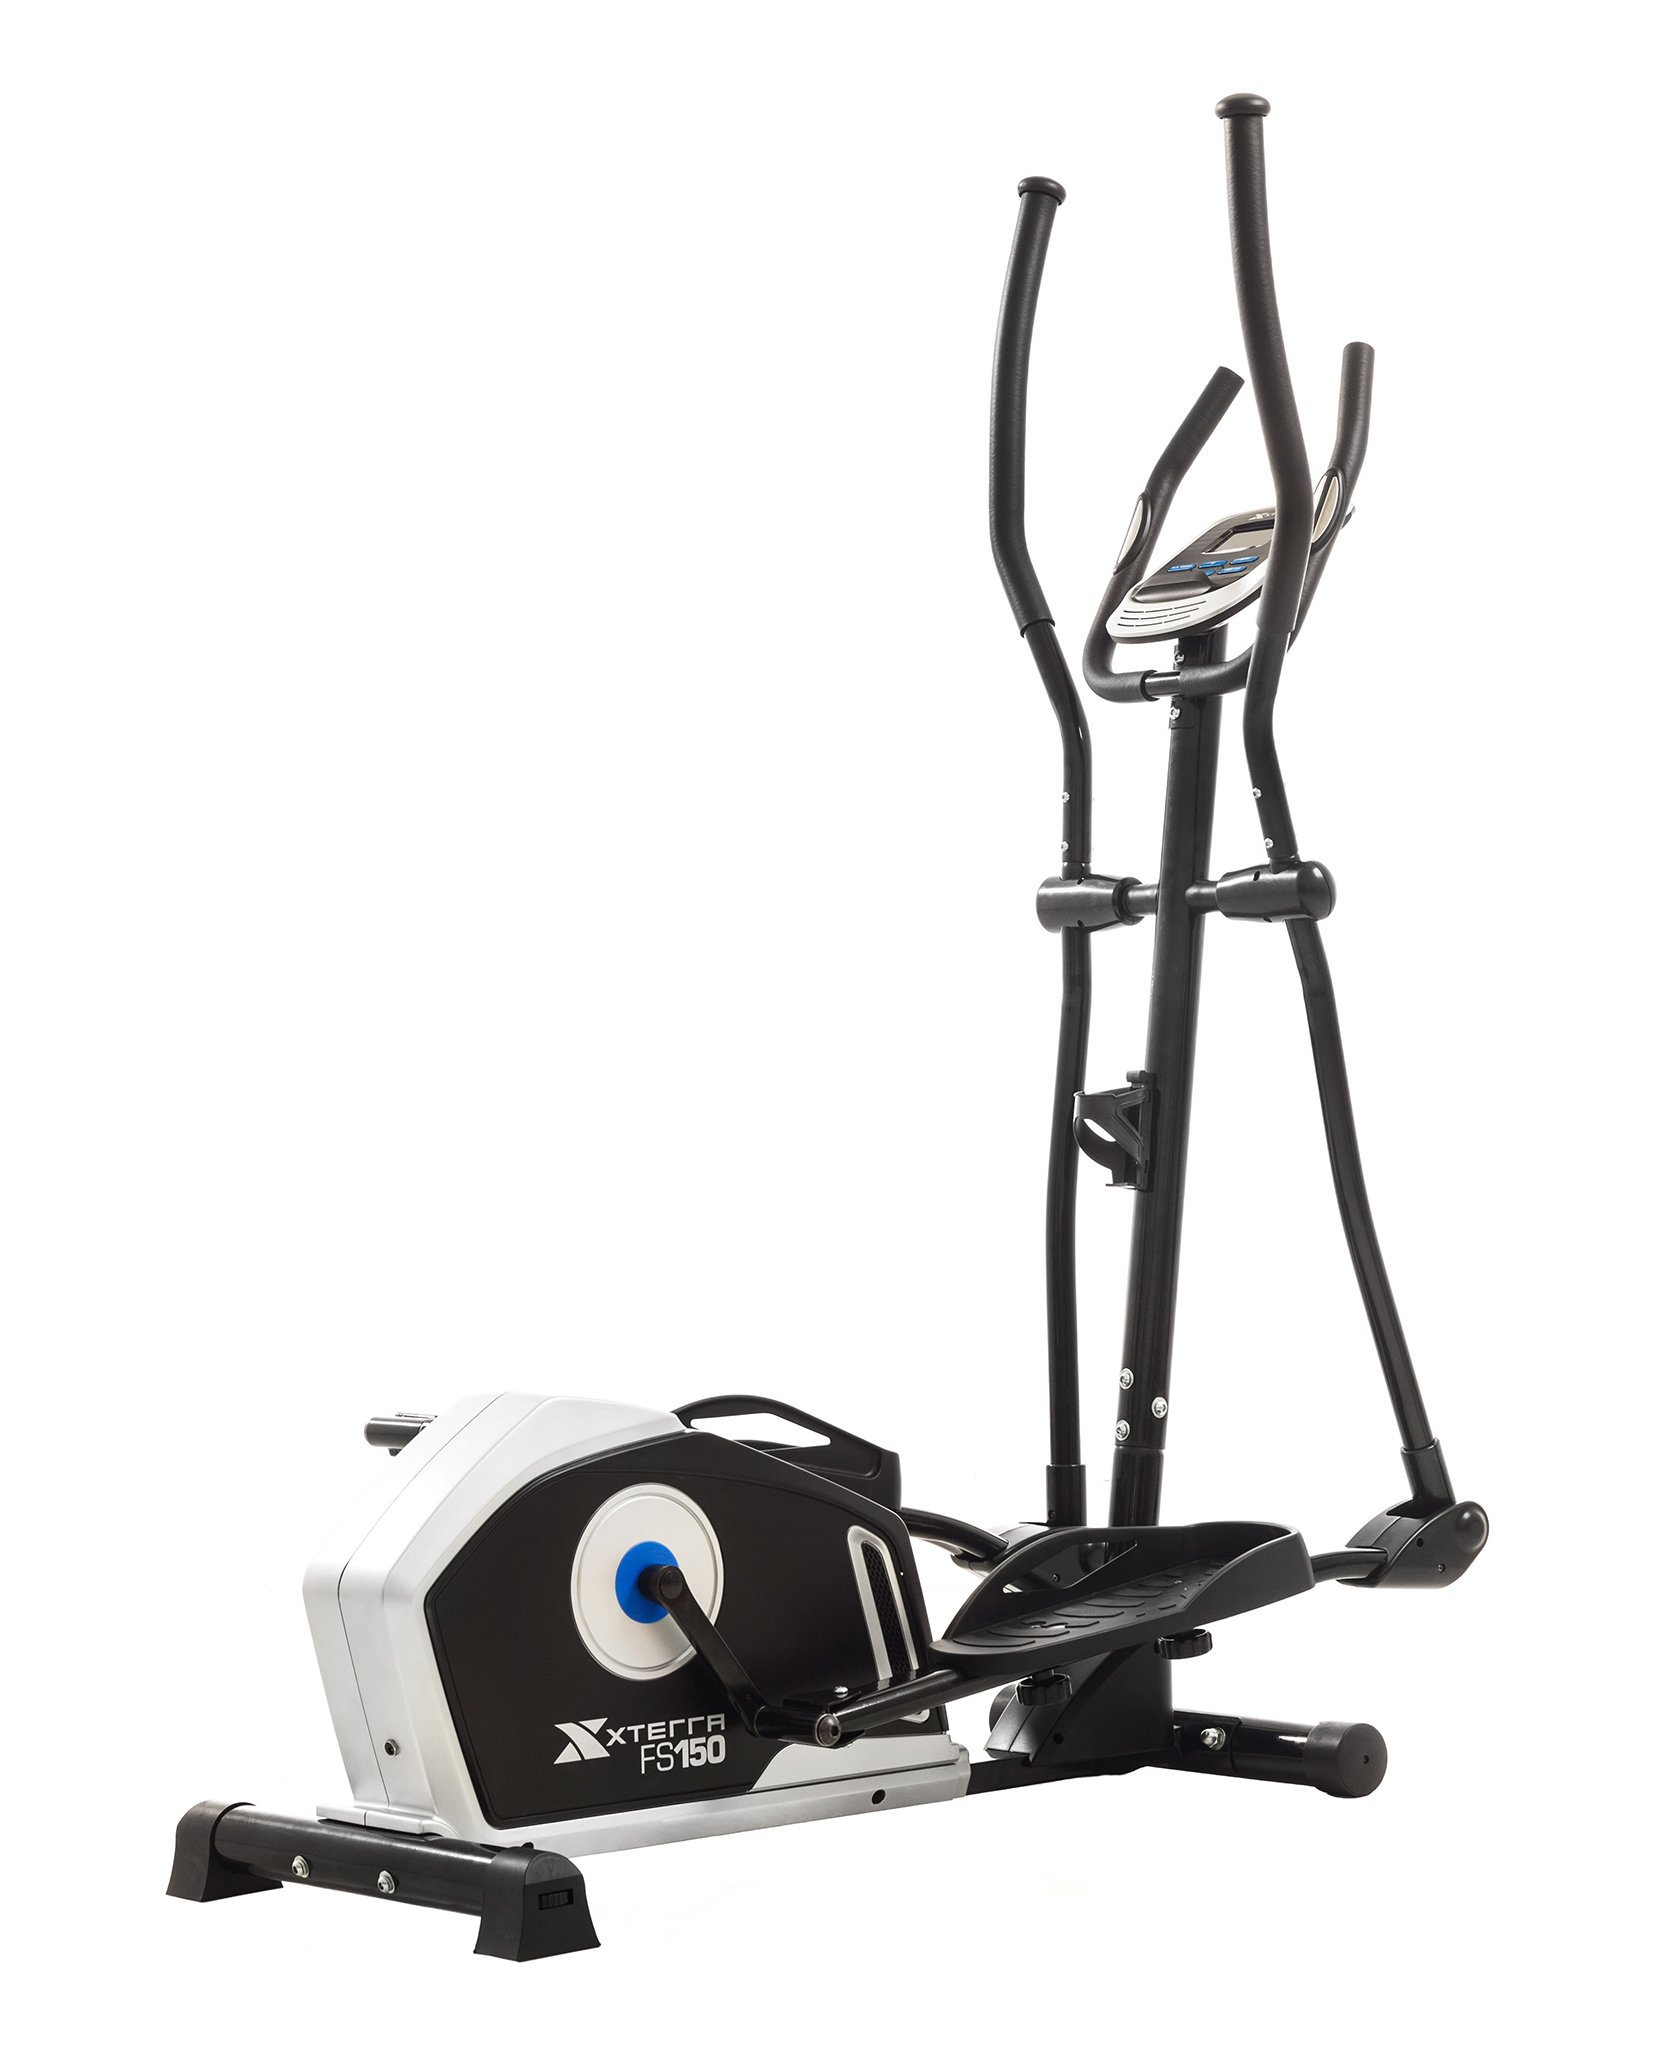 XTERRA Fitness FS150 Elliptical Trainer Equipment, 50'' x 23'' 64.2'', Black